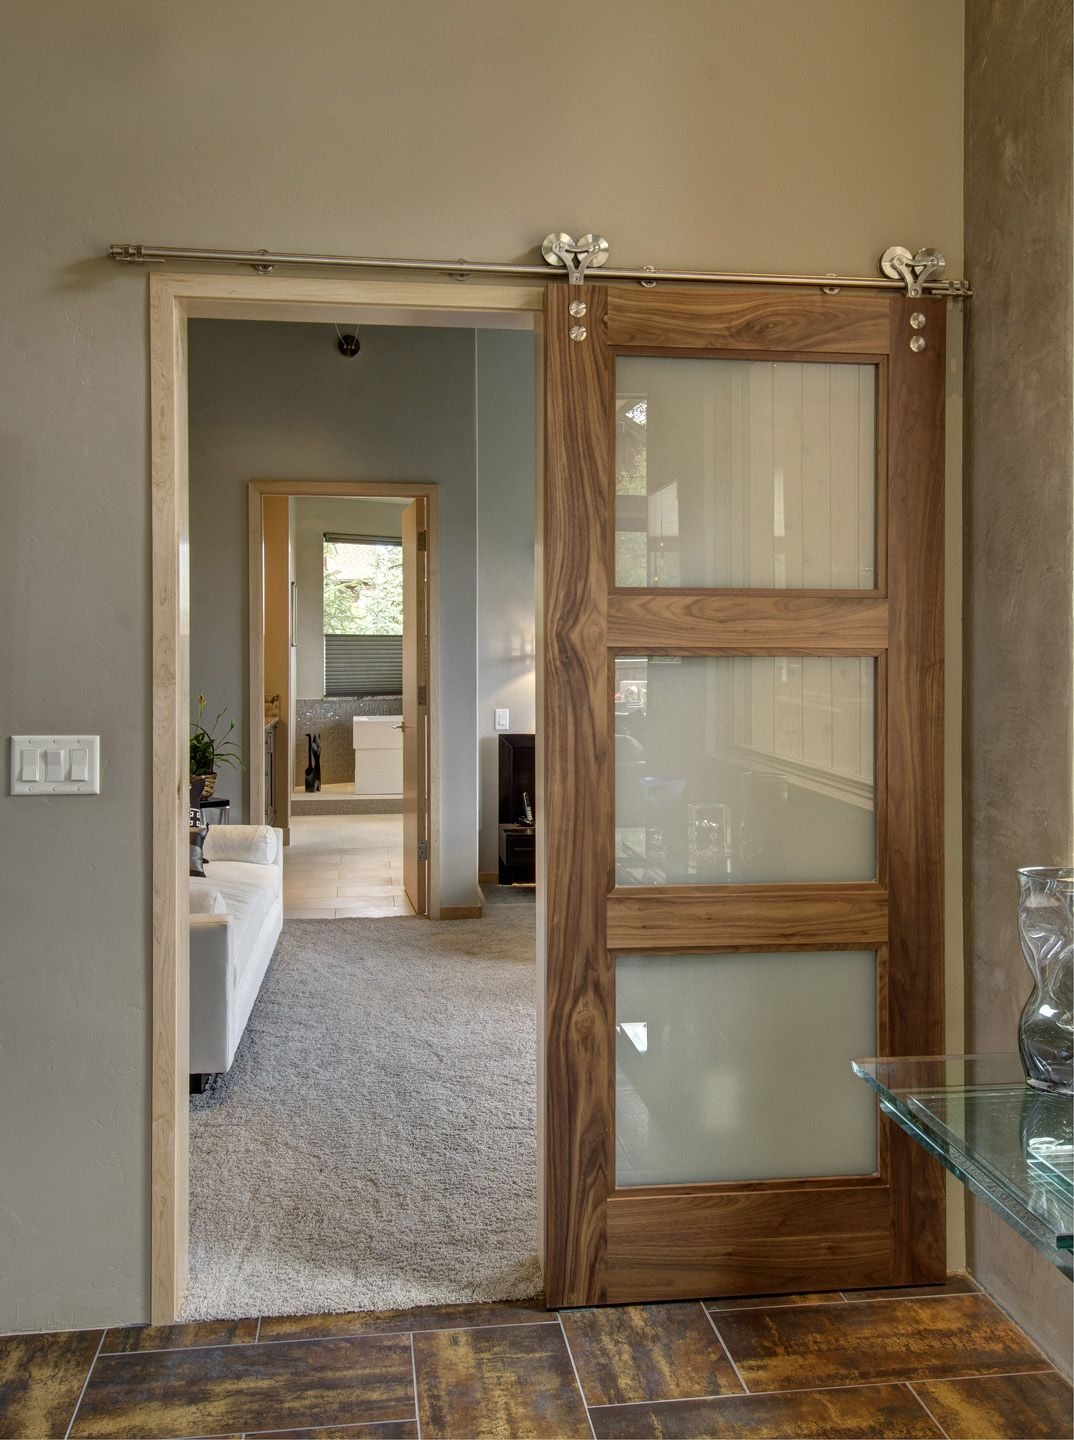 Sliding Barn Doors Don T Have To Be Rustic Sun Mountain Glass Barn Doors Wood Doors Interior Interior Sliding Barn Doors